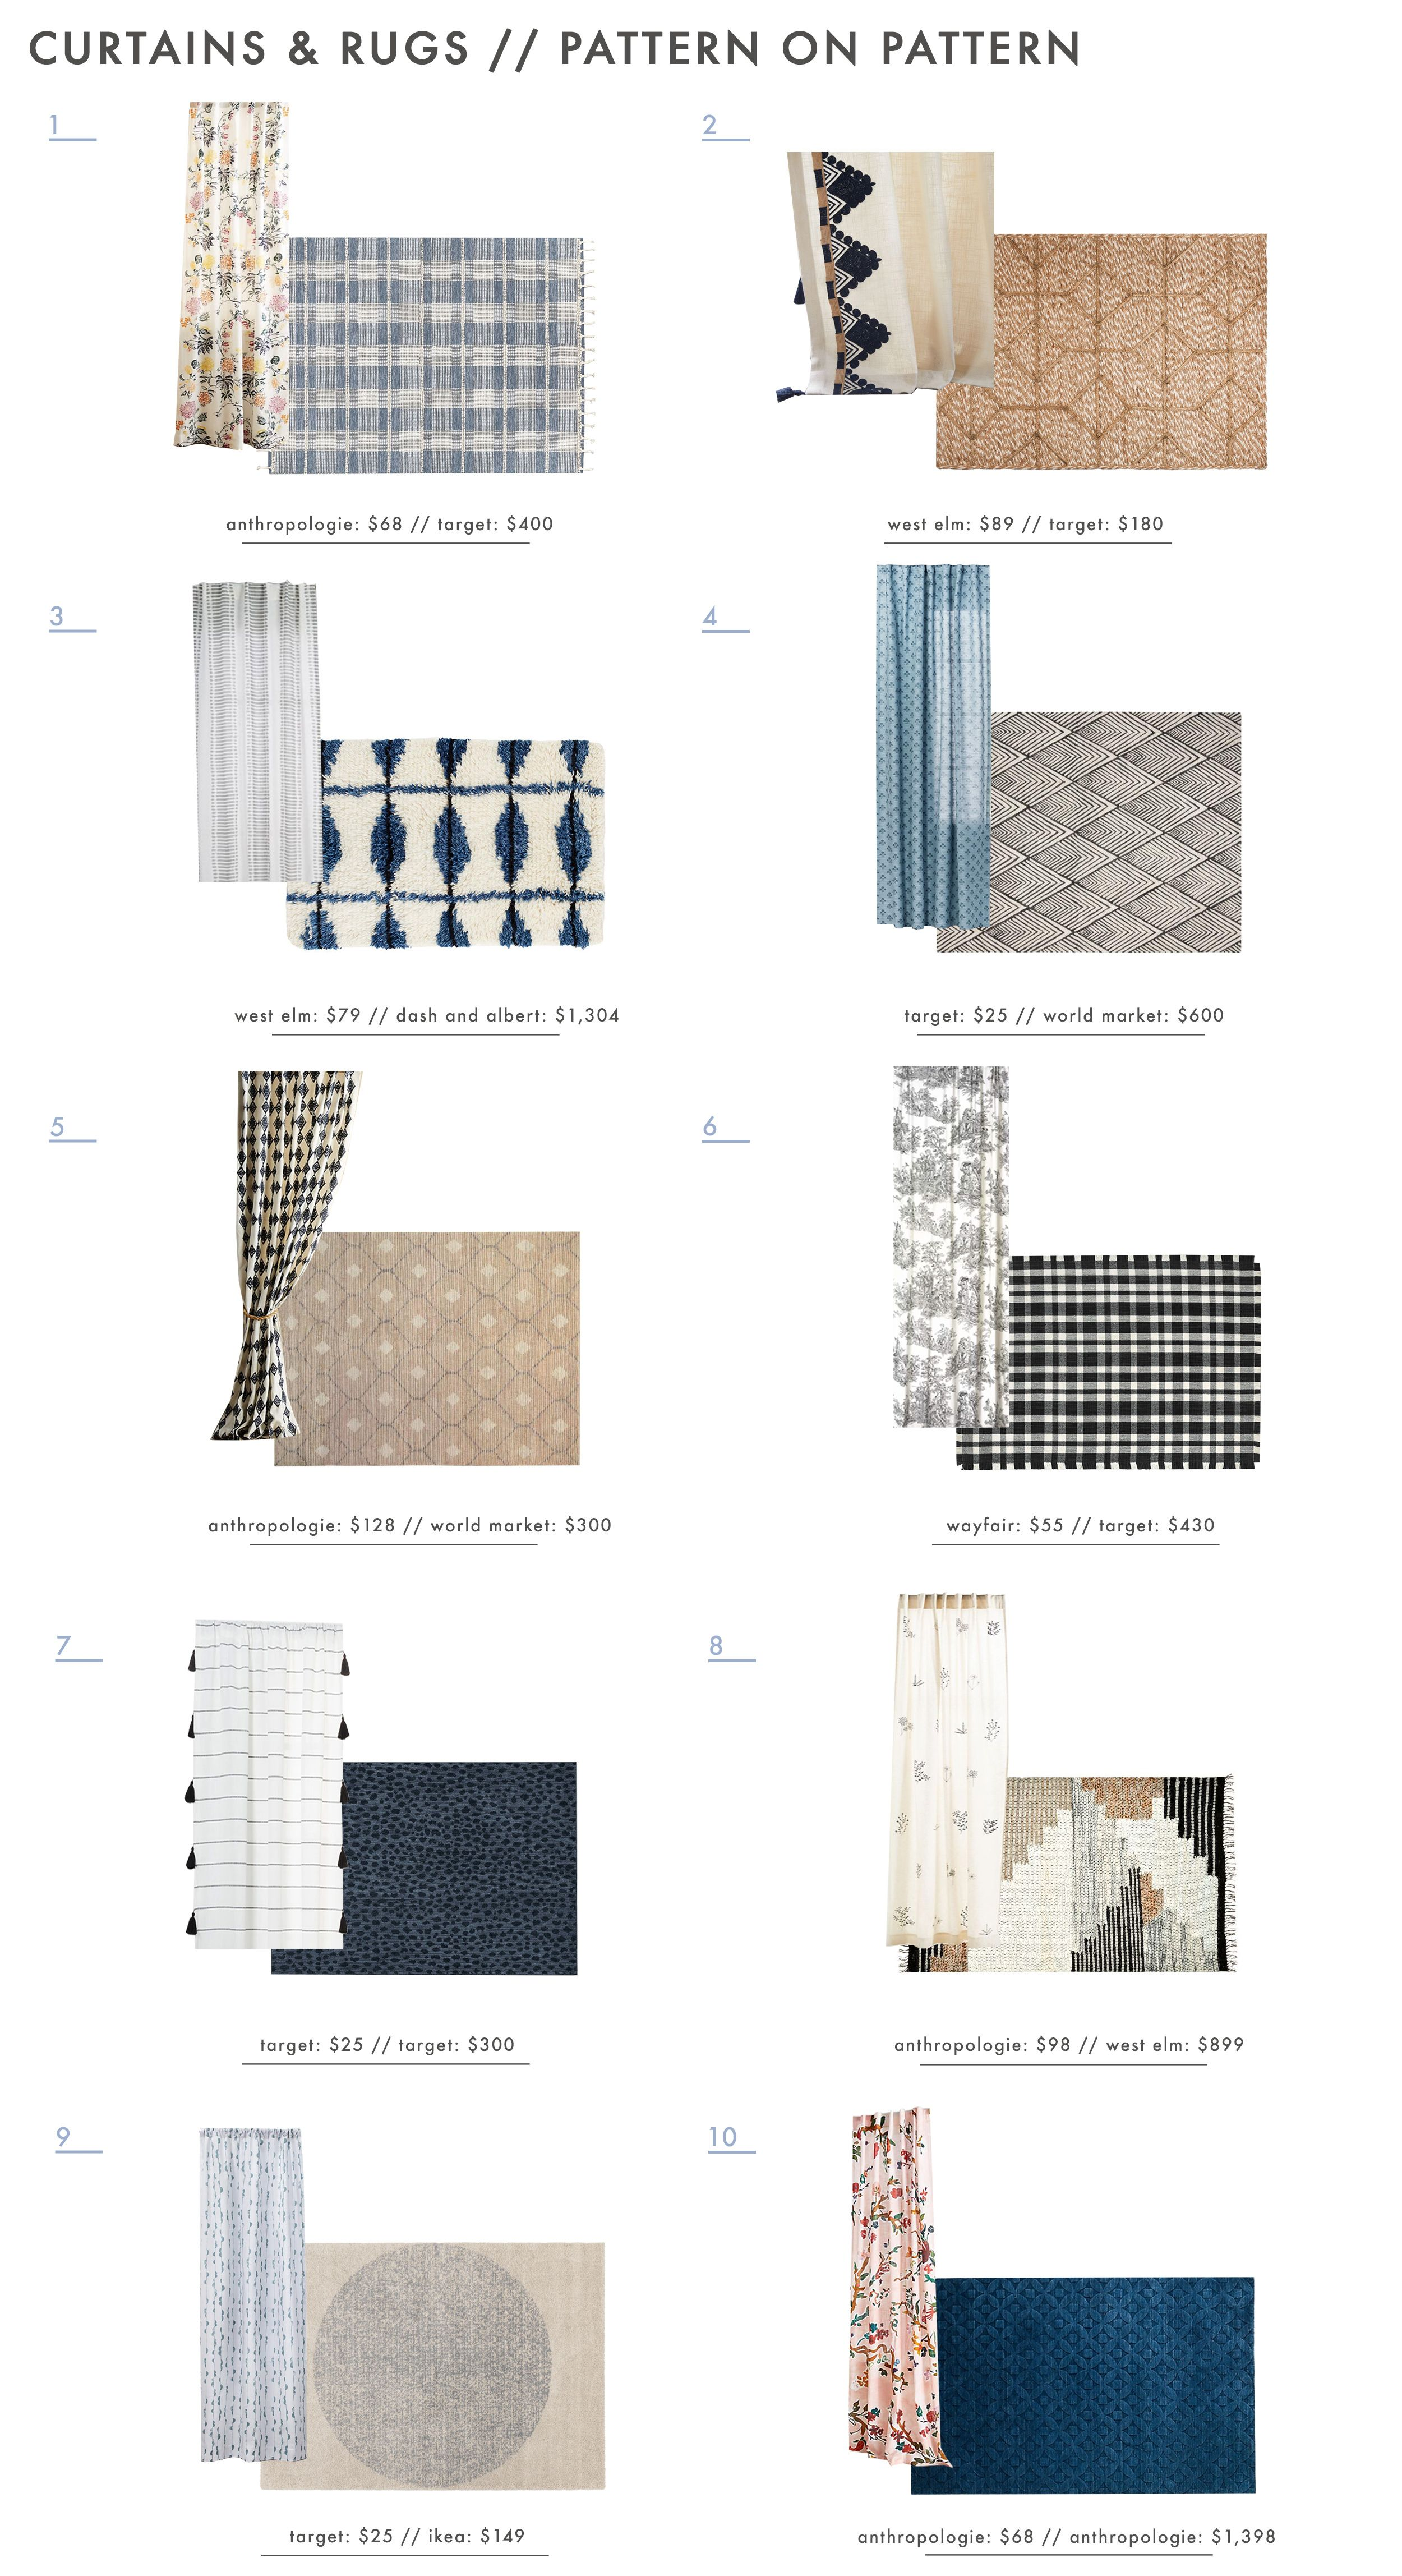 Power Couples How To Expertly Pair Curtains Rugs 30 Combos To Try Emily Henderson Living Room Decor Curtains Patterned Furniture Rugs In Living Room #white #curtains #living #room #ideas